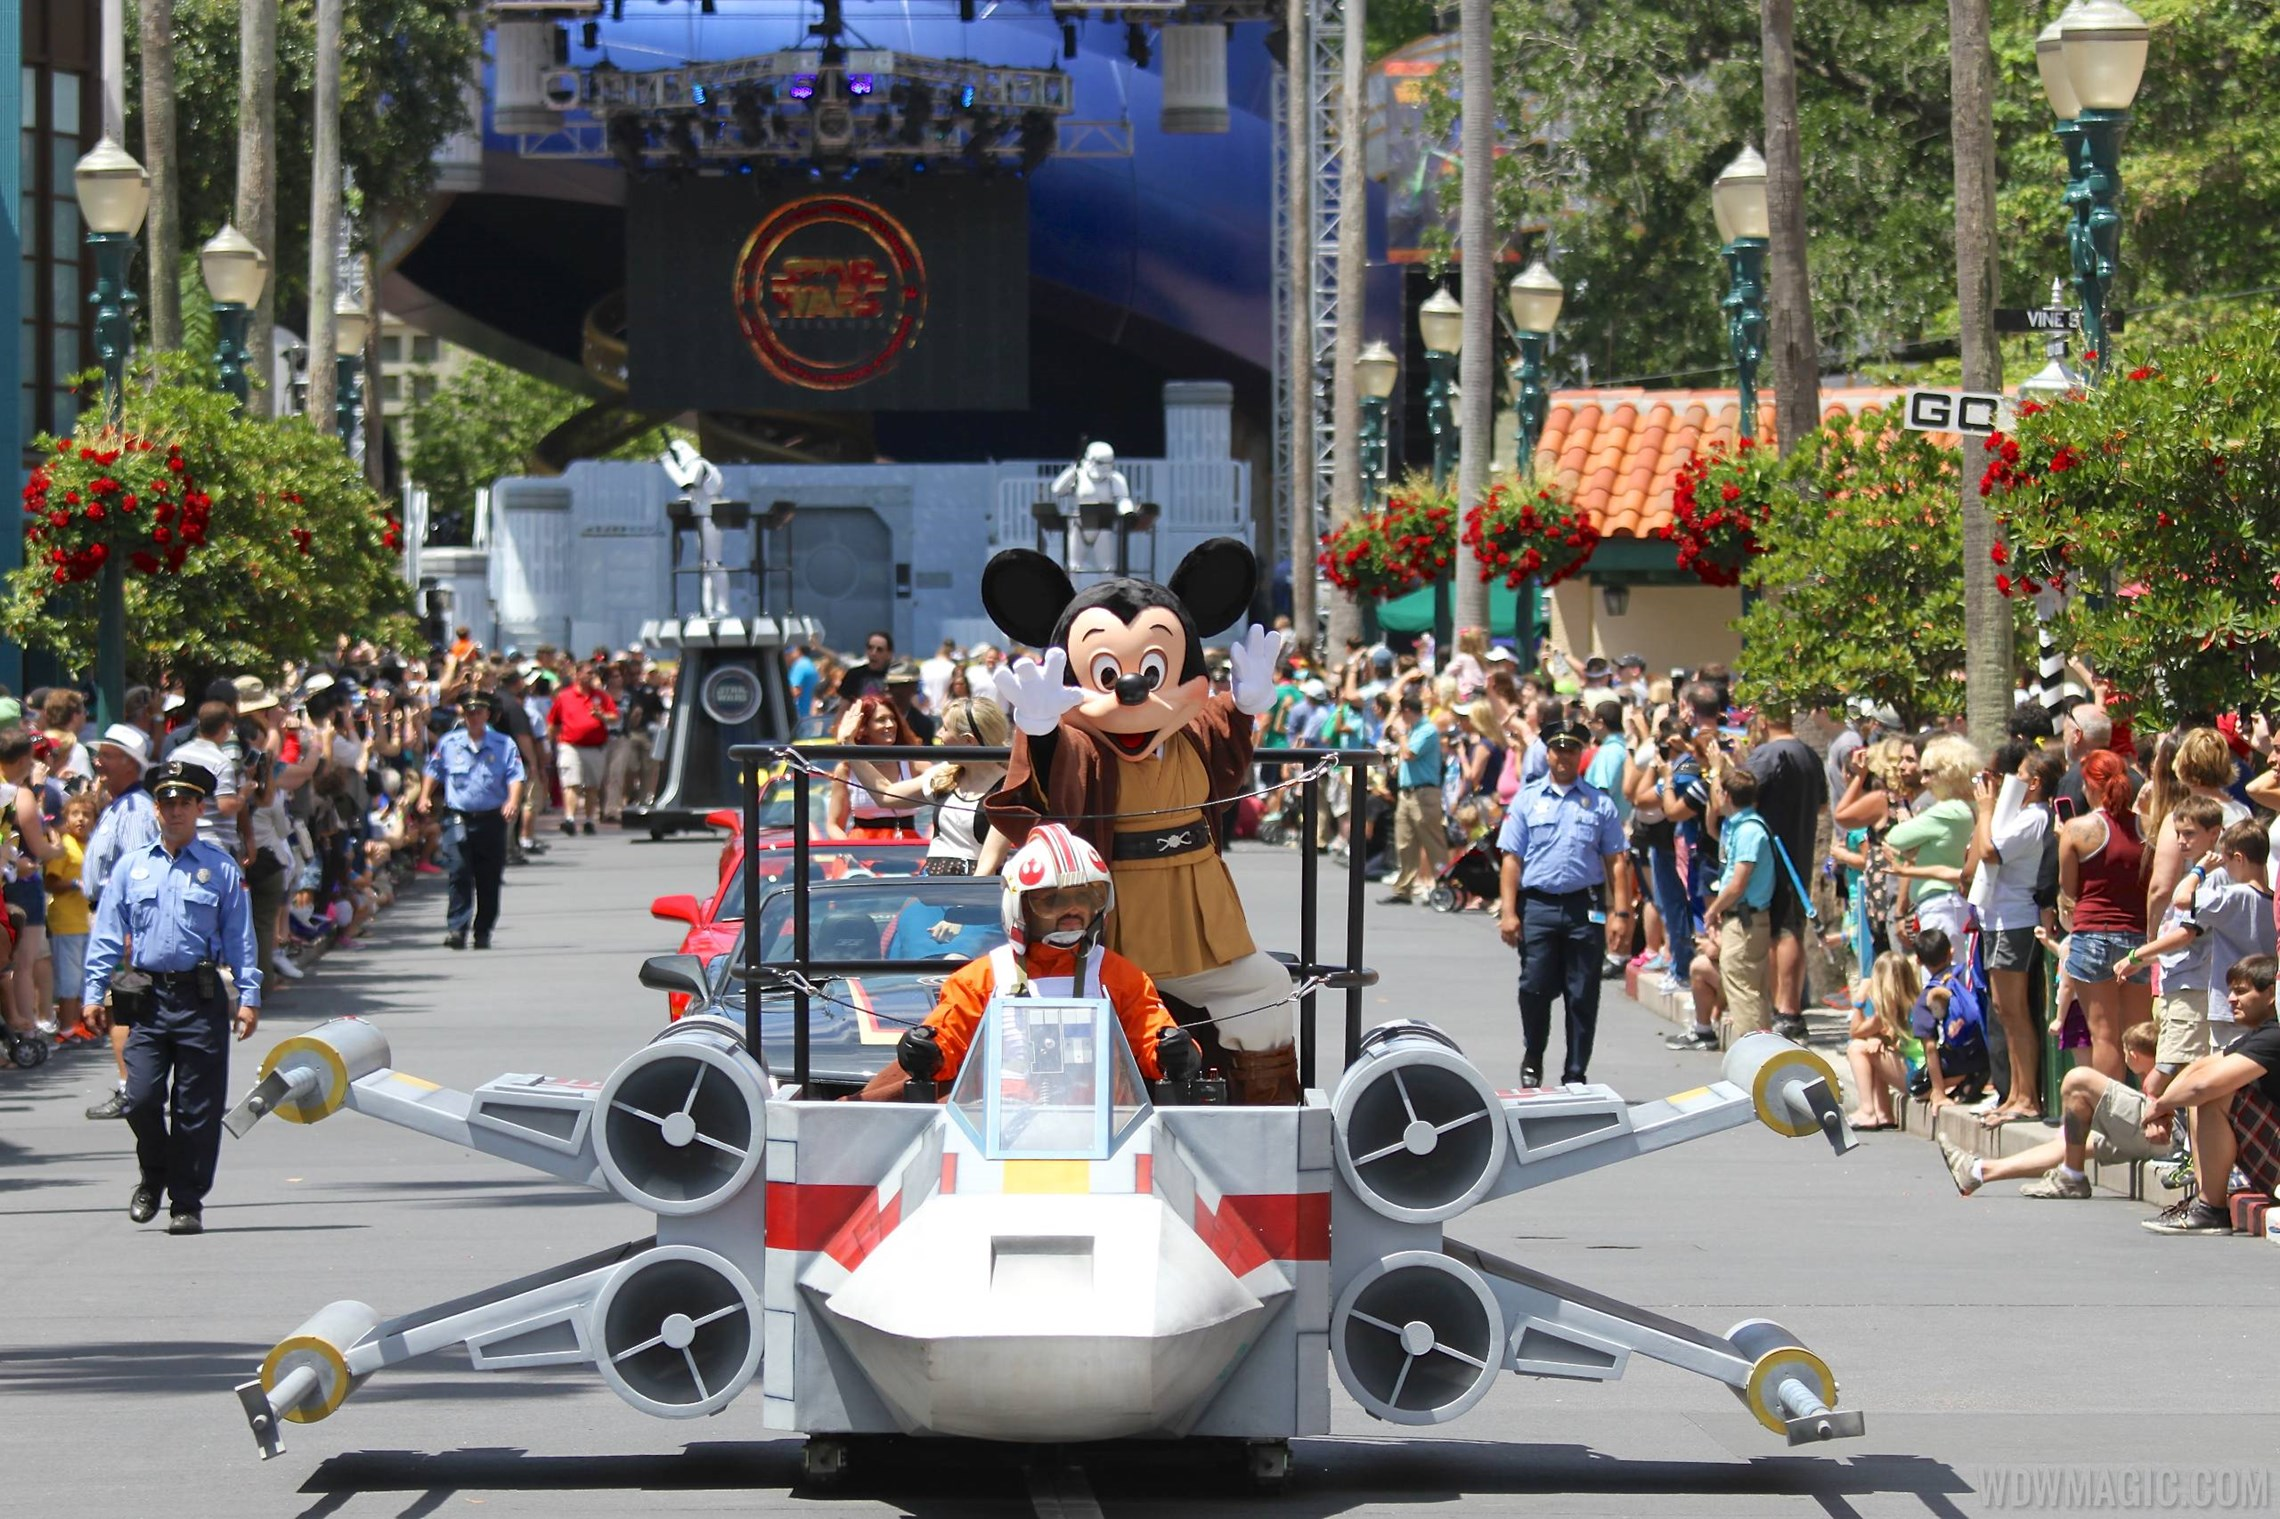 2014 Star Wars Weekends - Weekend 1 Legends of the Force motorcade celebrities